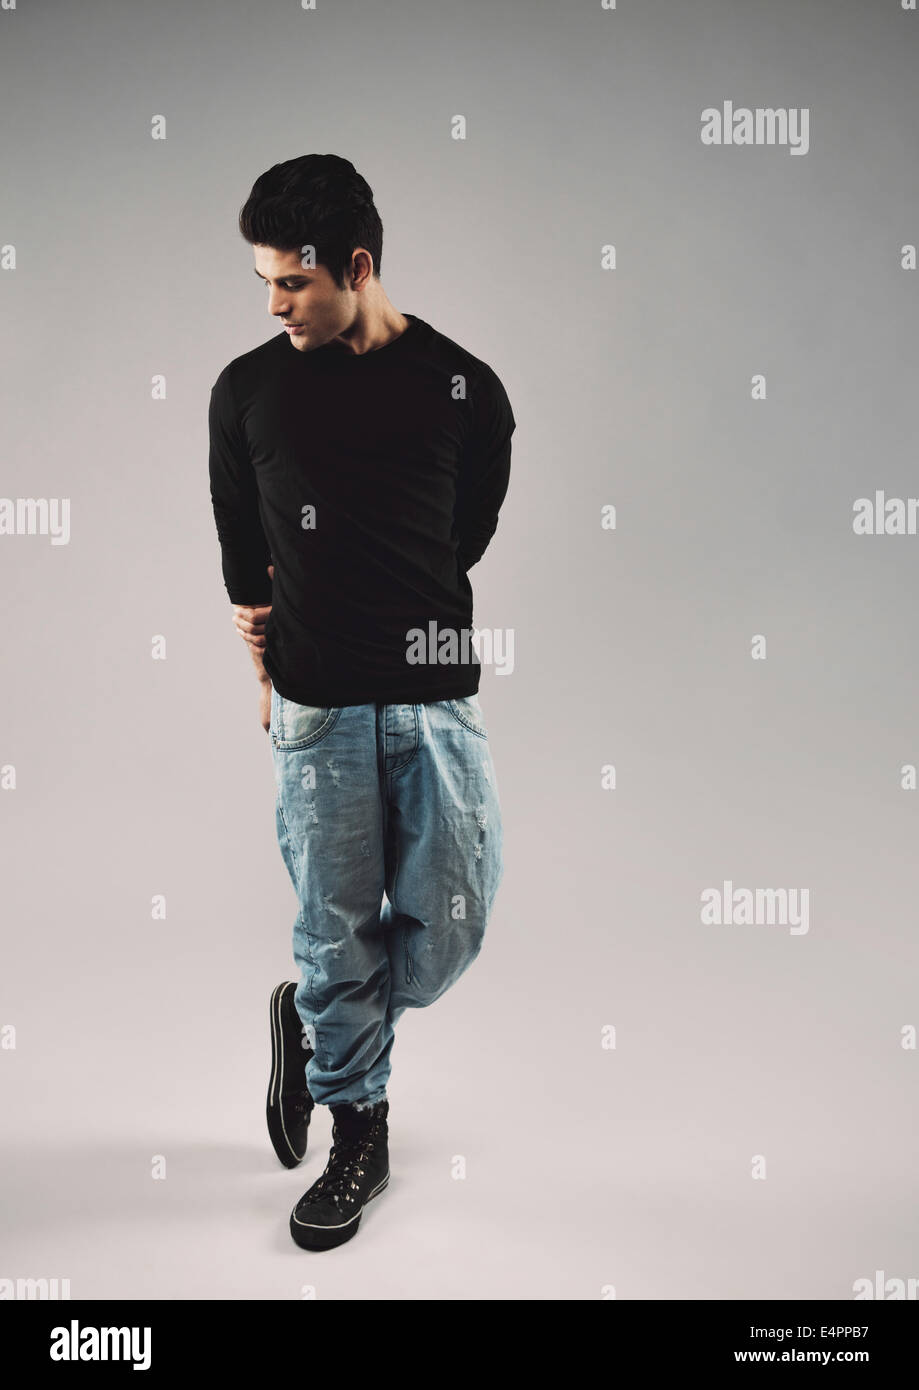 Full length portrait of hispanic young man in casuals posing. Male model looking down while standing on grey background. - Stock Image